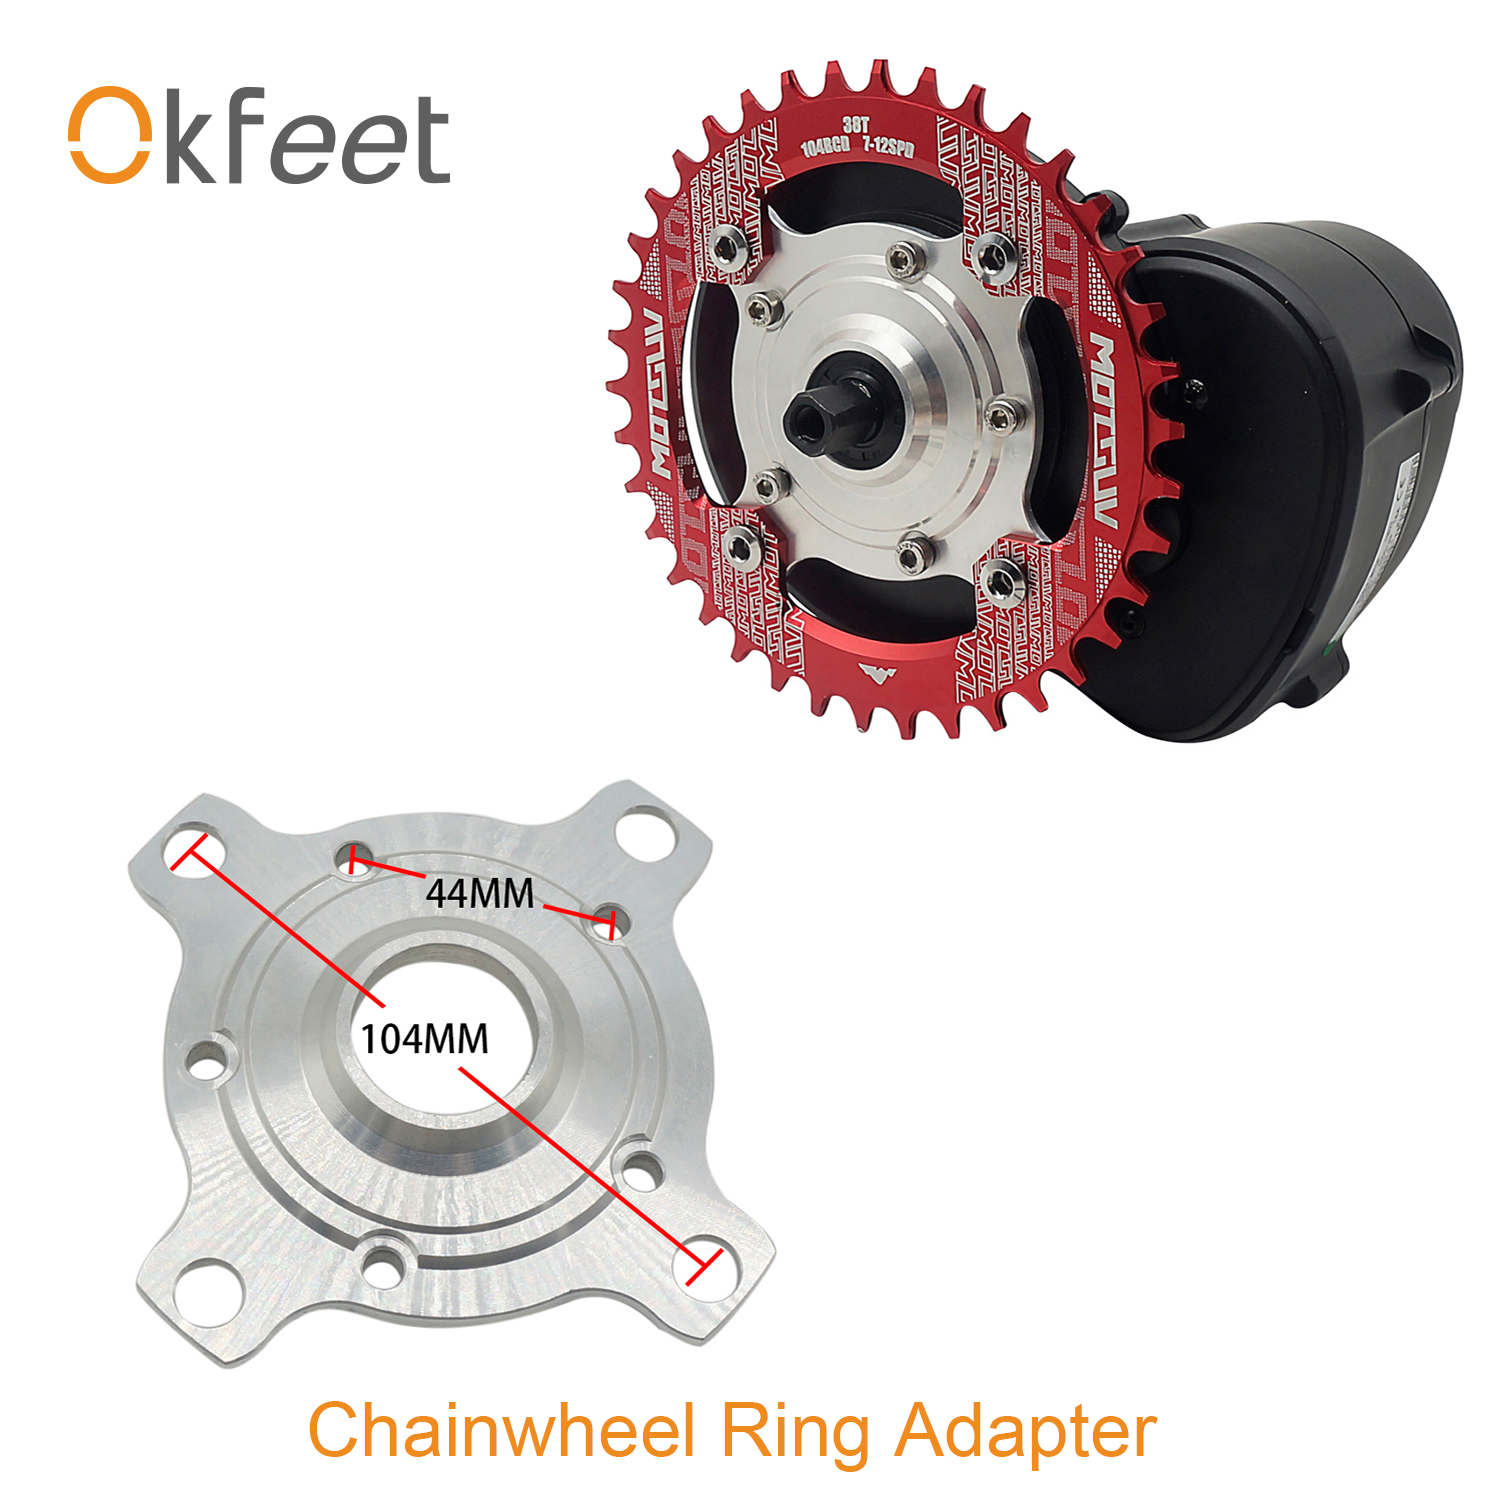 Spider-Adapter Mid-Drive-Motor E-Bike-Chain Tsdz2 Tongsheng Electric-Bicycle Wheel-Ring title=